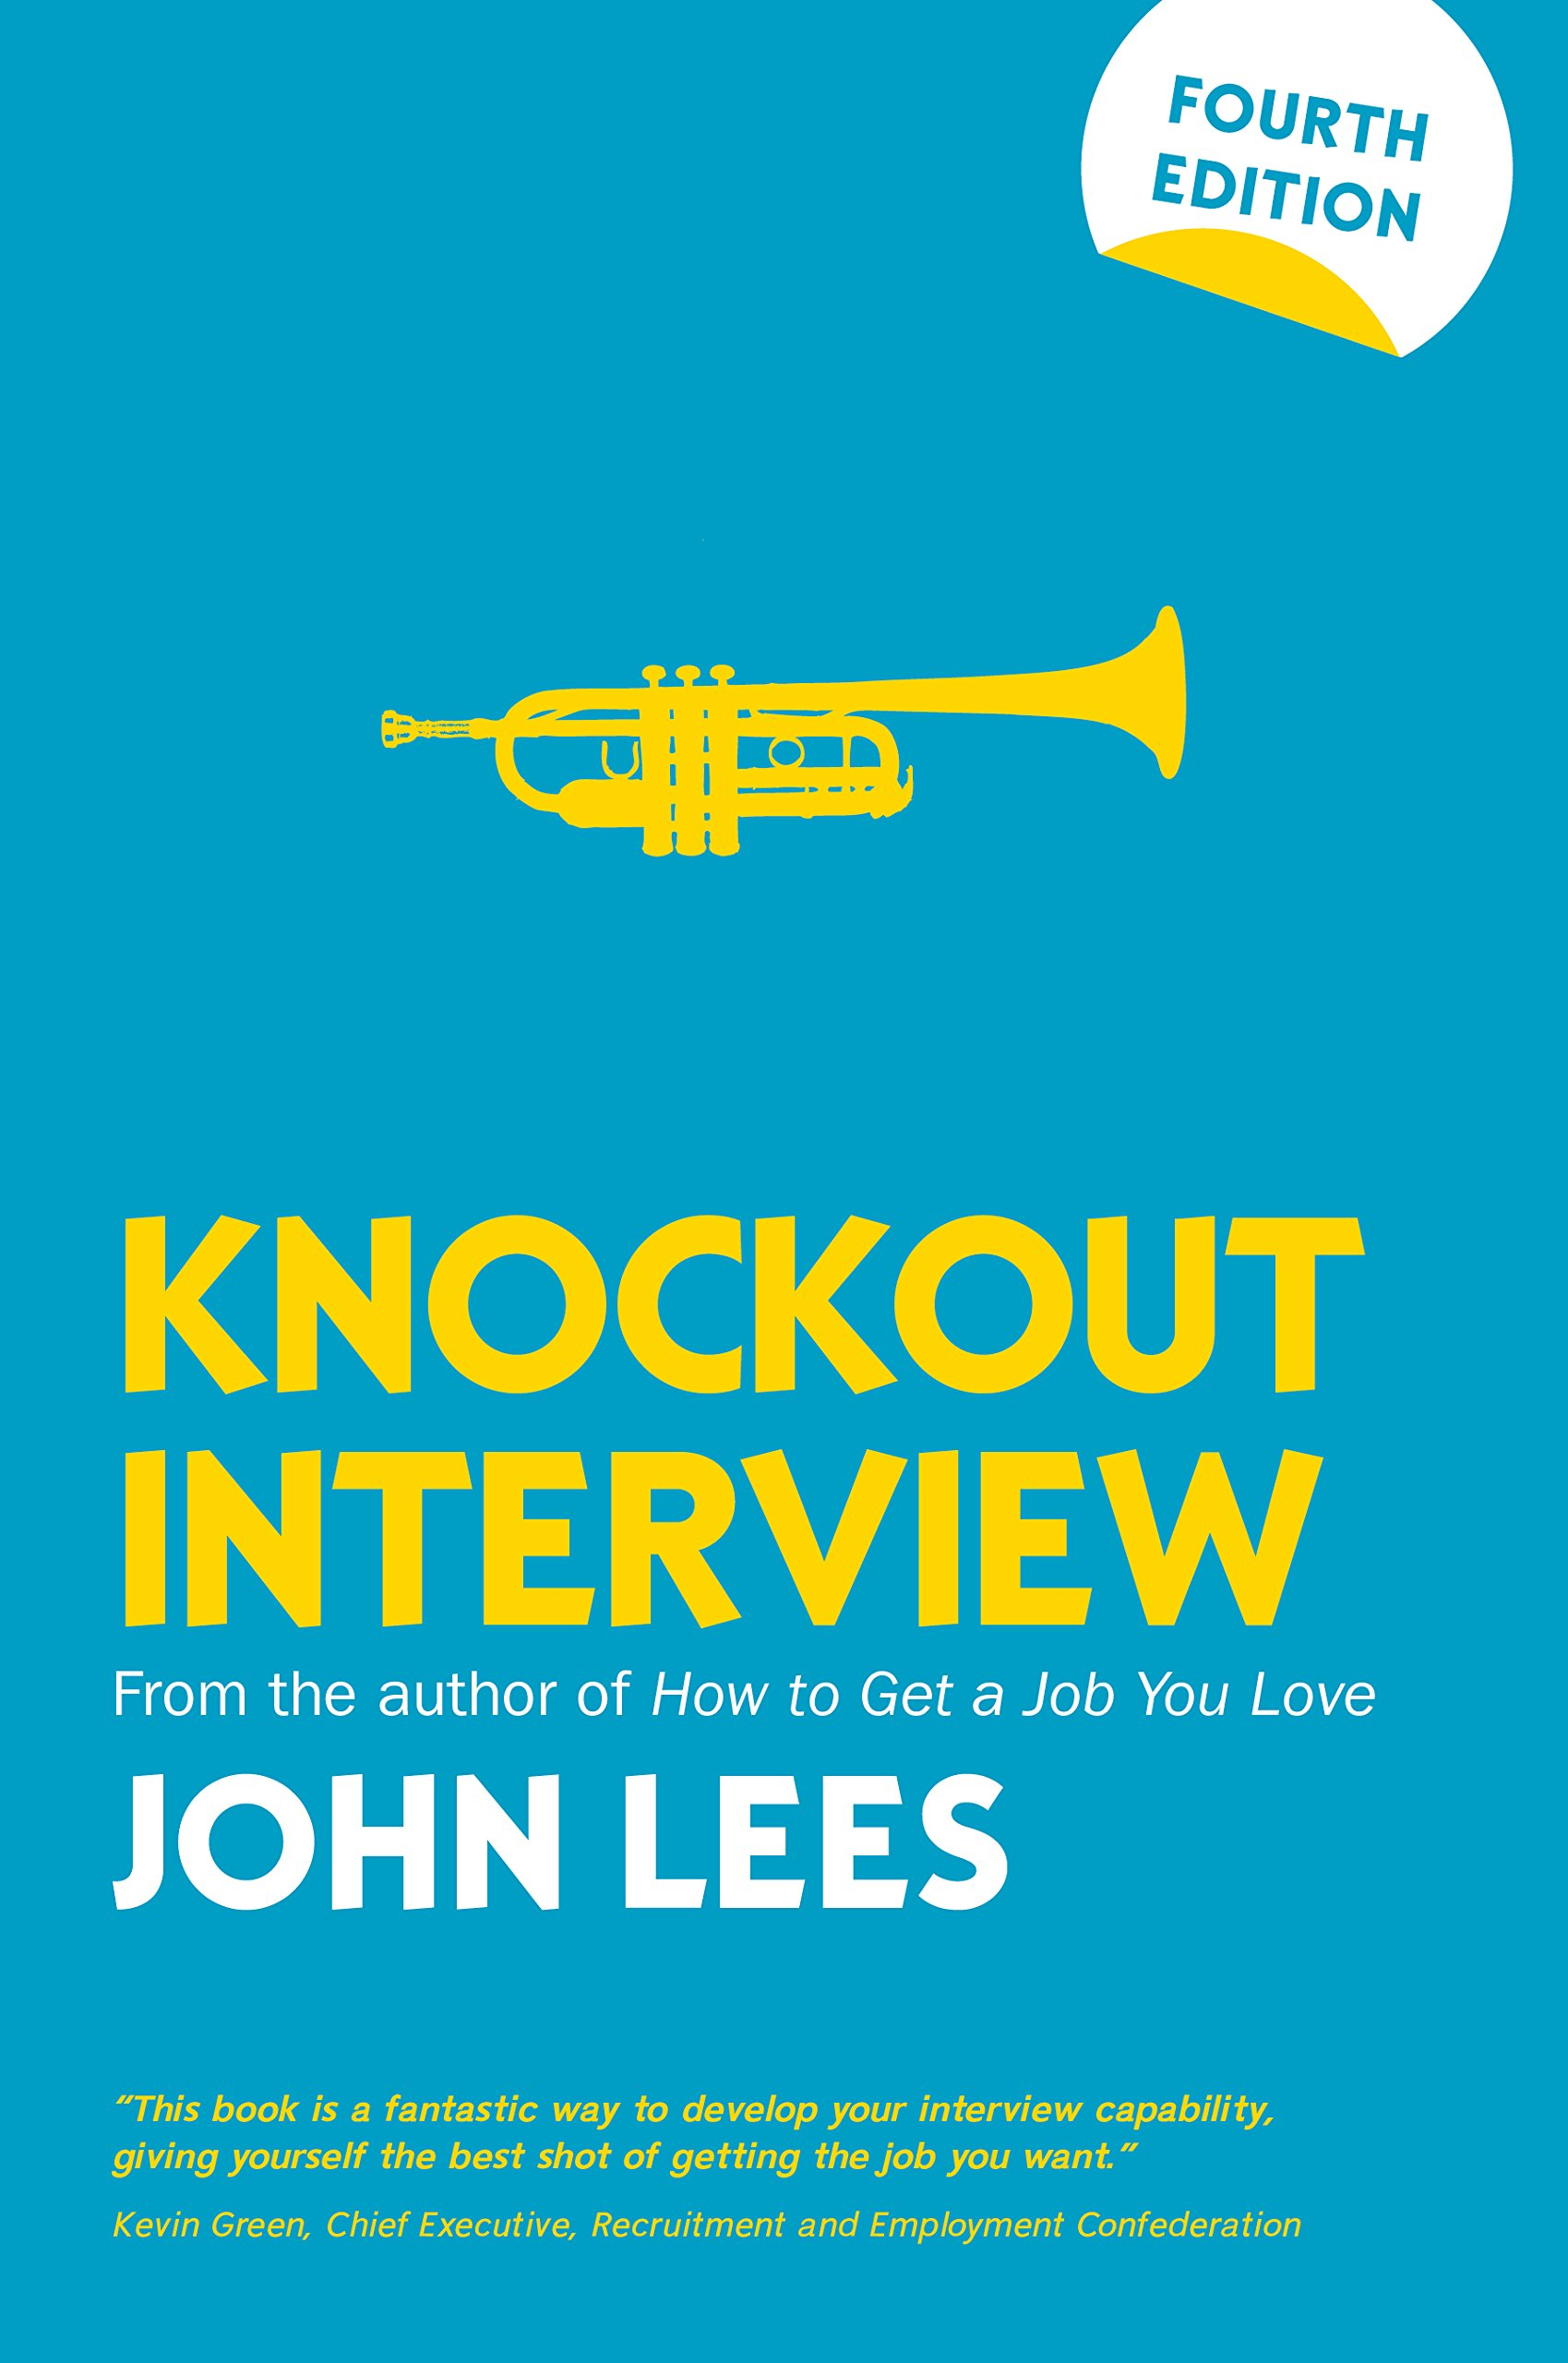 knockout interview uk professional business management business knockout interview uk professional business management business amazon co uk john lees 9780077189563 books